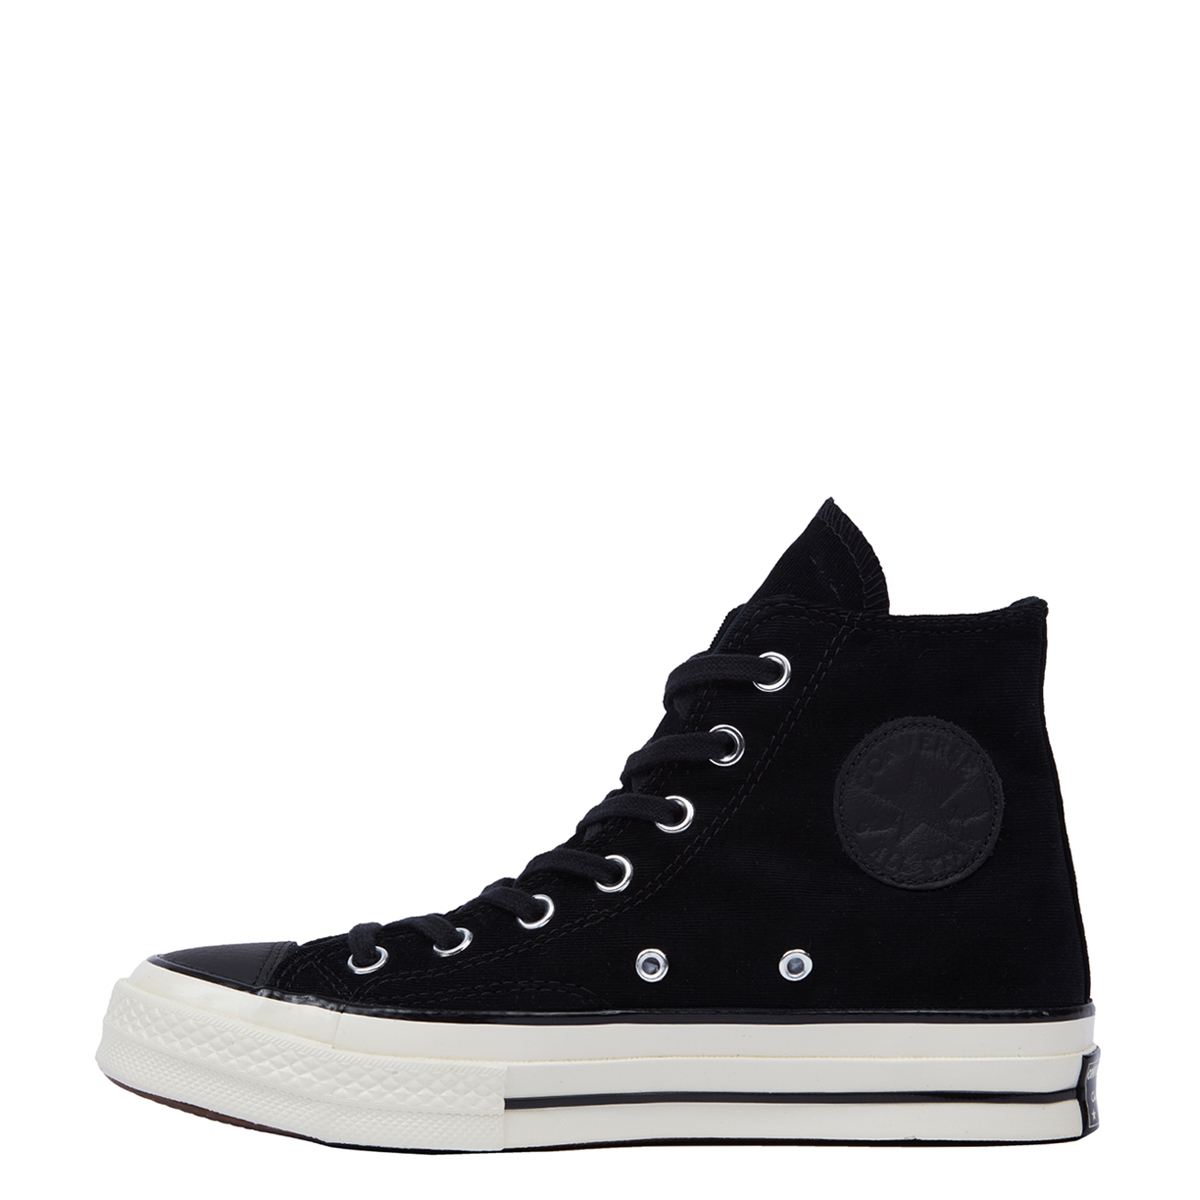 Converse Chuck Taylor All Star '70 Hi Top Sneakers 153985C Black by Converse